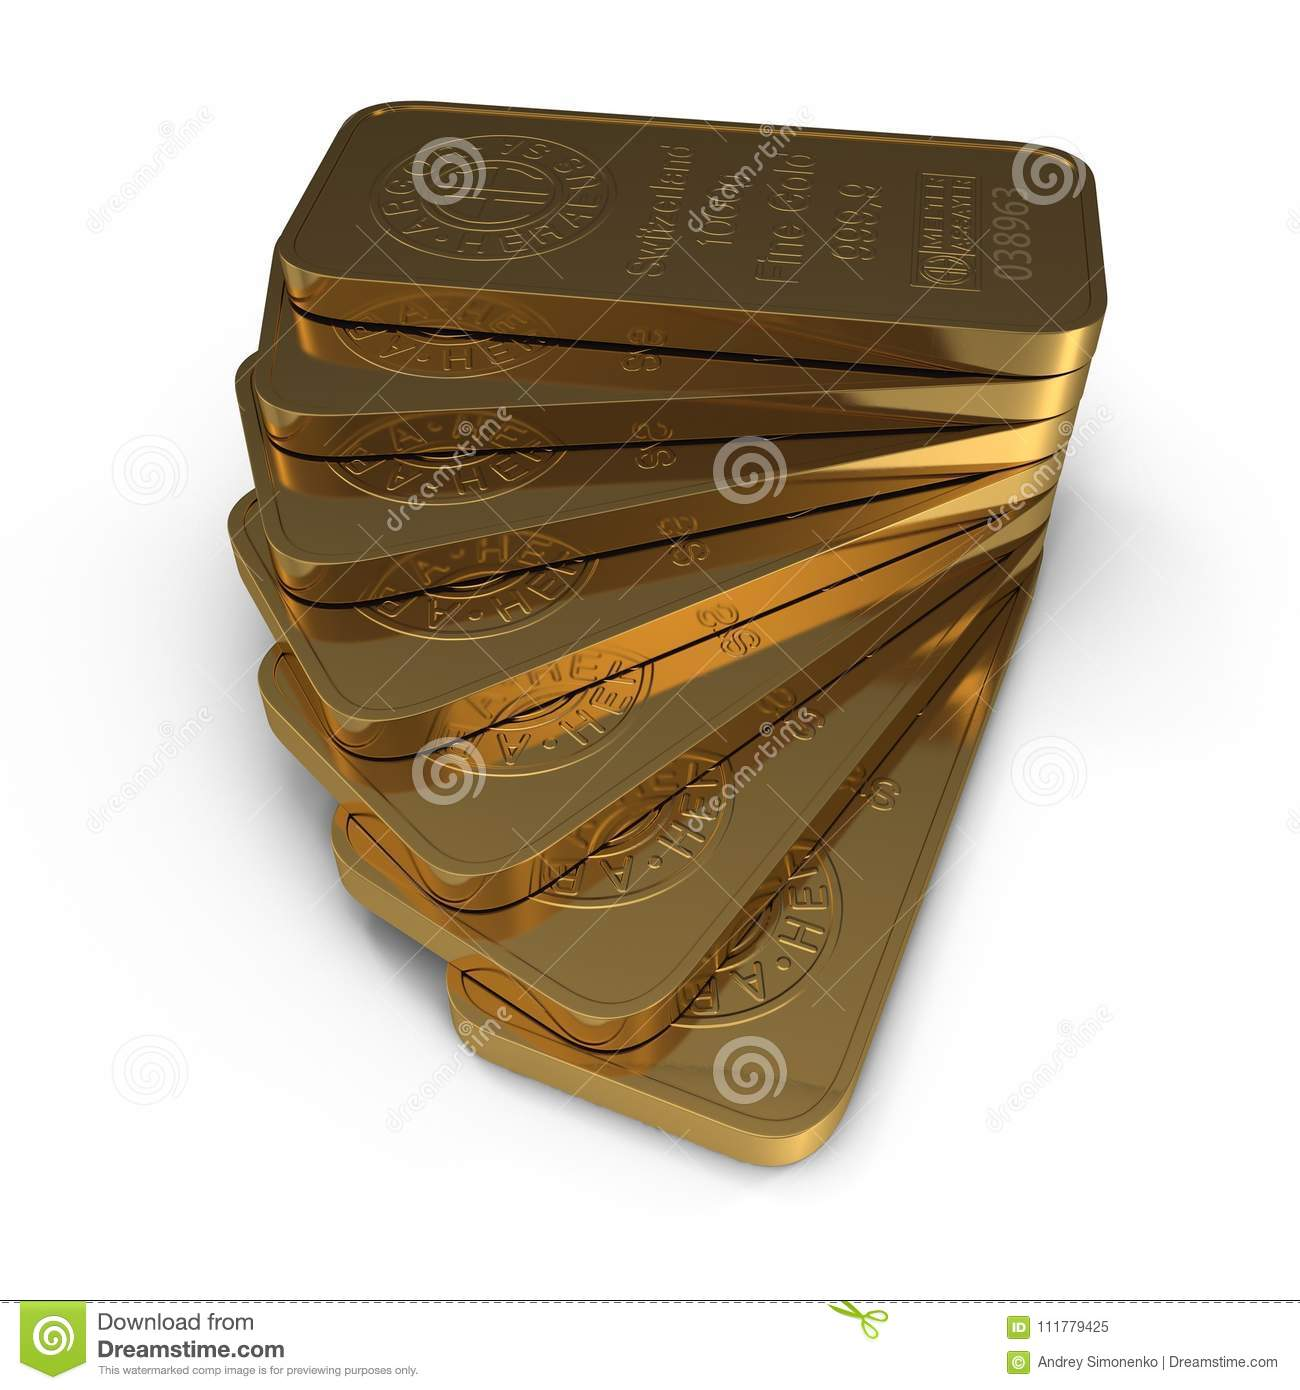 Gold bar 1000g isolated on white. 3D illustration